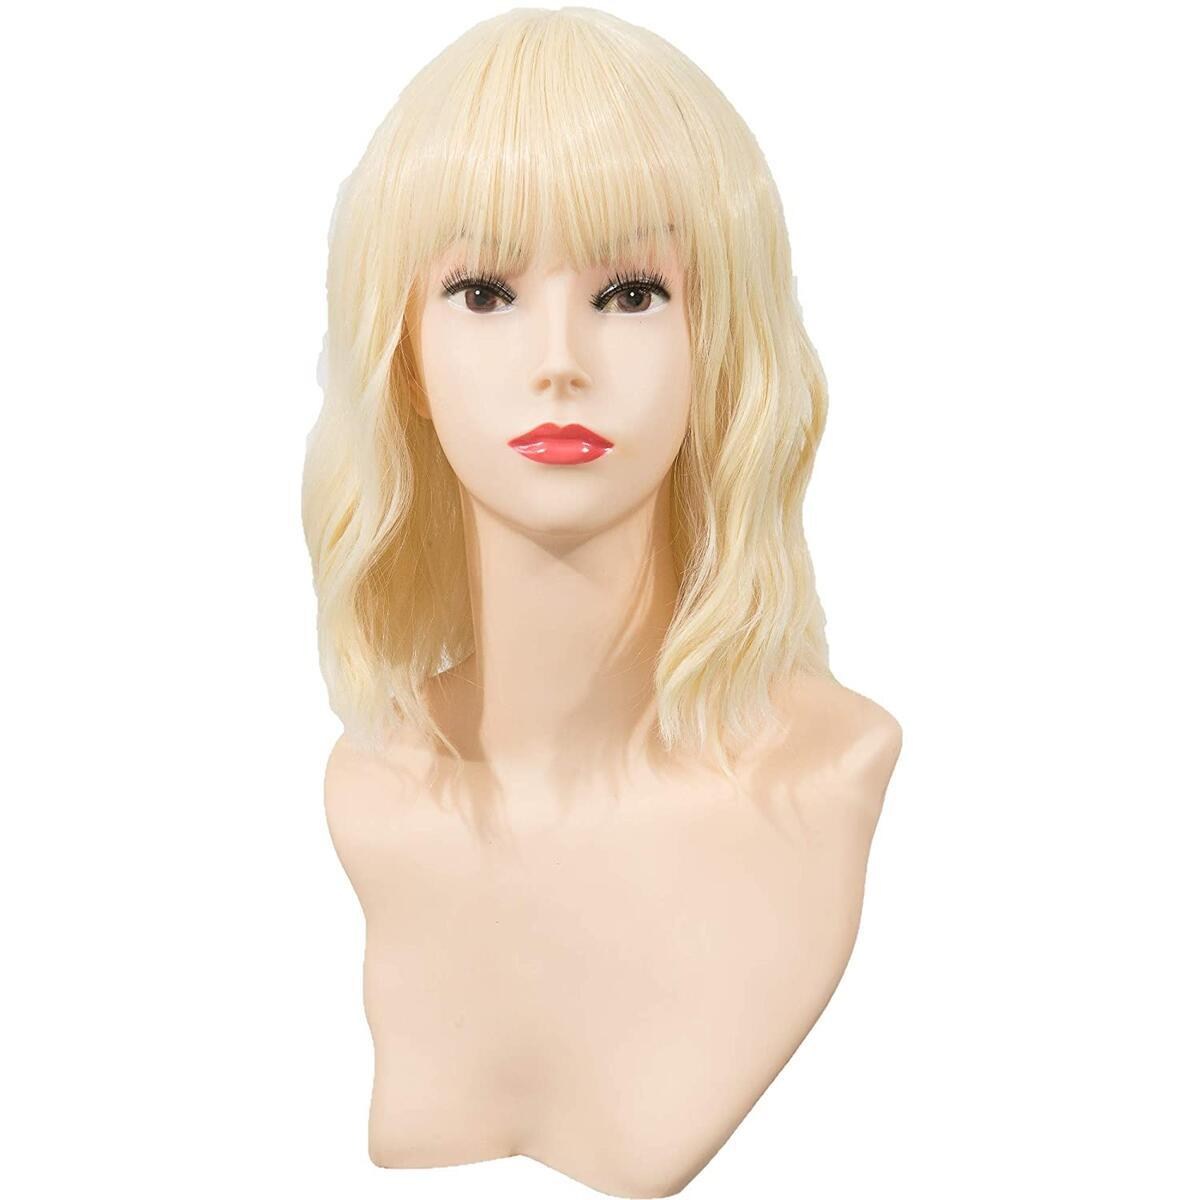 FESTIVAL PARTY Light Blond Short Wavy Wig with Bangs for Women Curly Hair Natural Looking Heat Resistant Fiber Daily Use Costume Cosplay Halloween Party Wigs Blonde 14